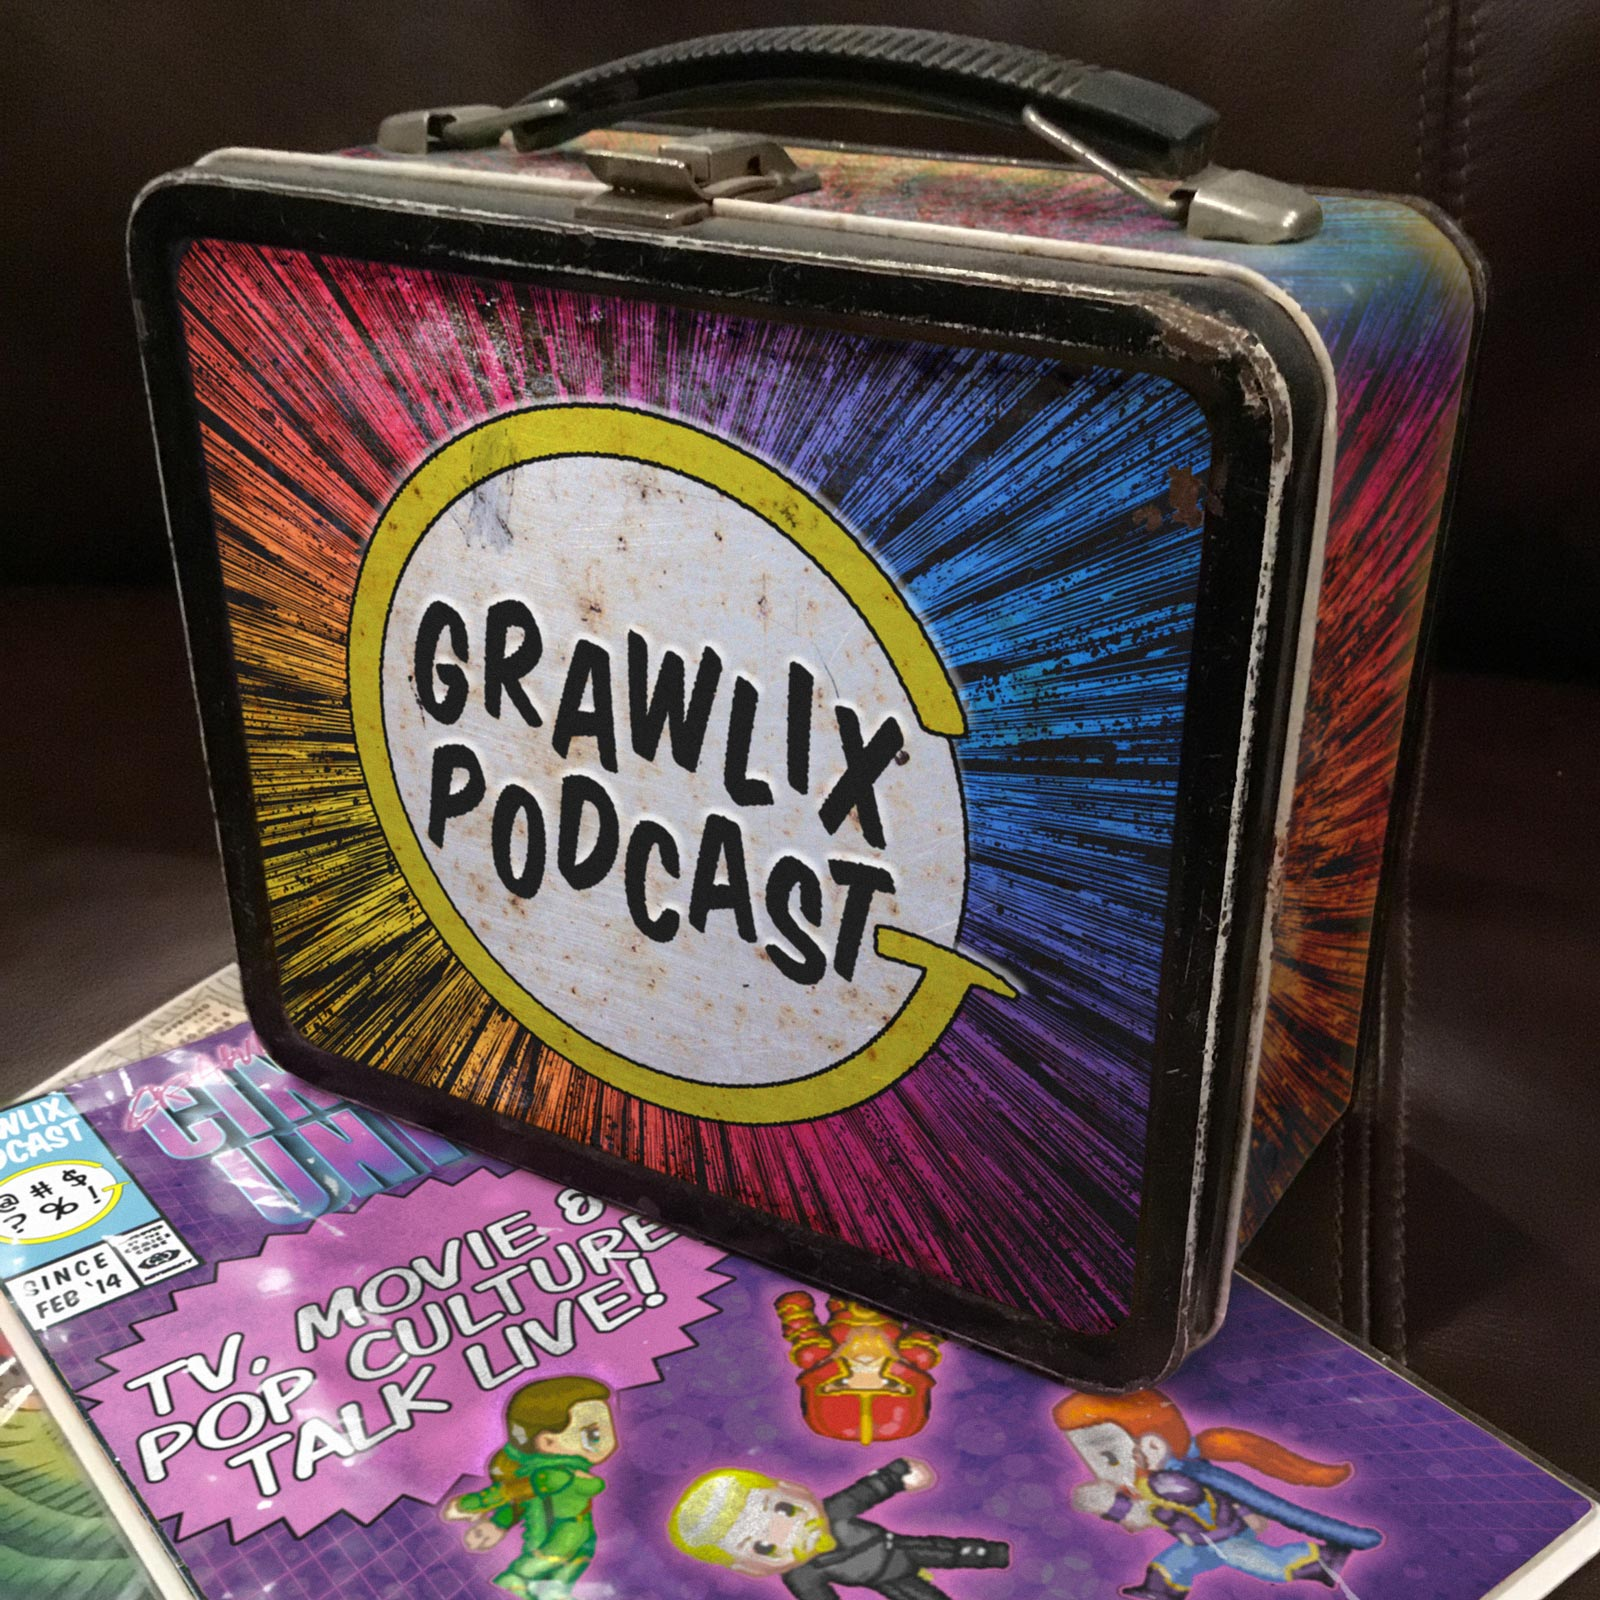 Grawlix Lunch Box Live!